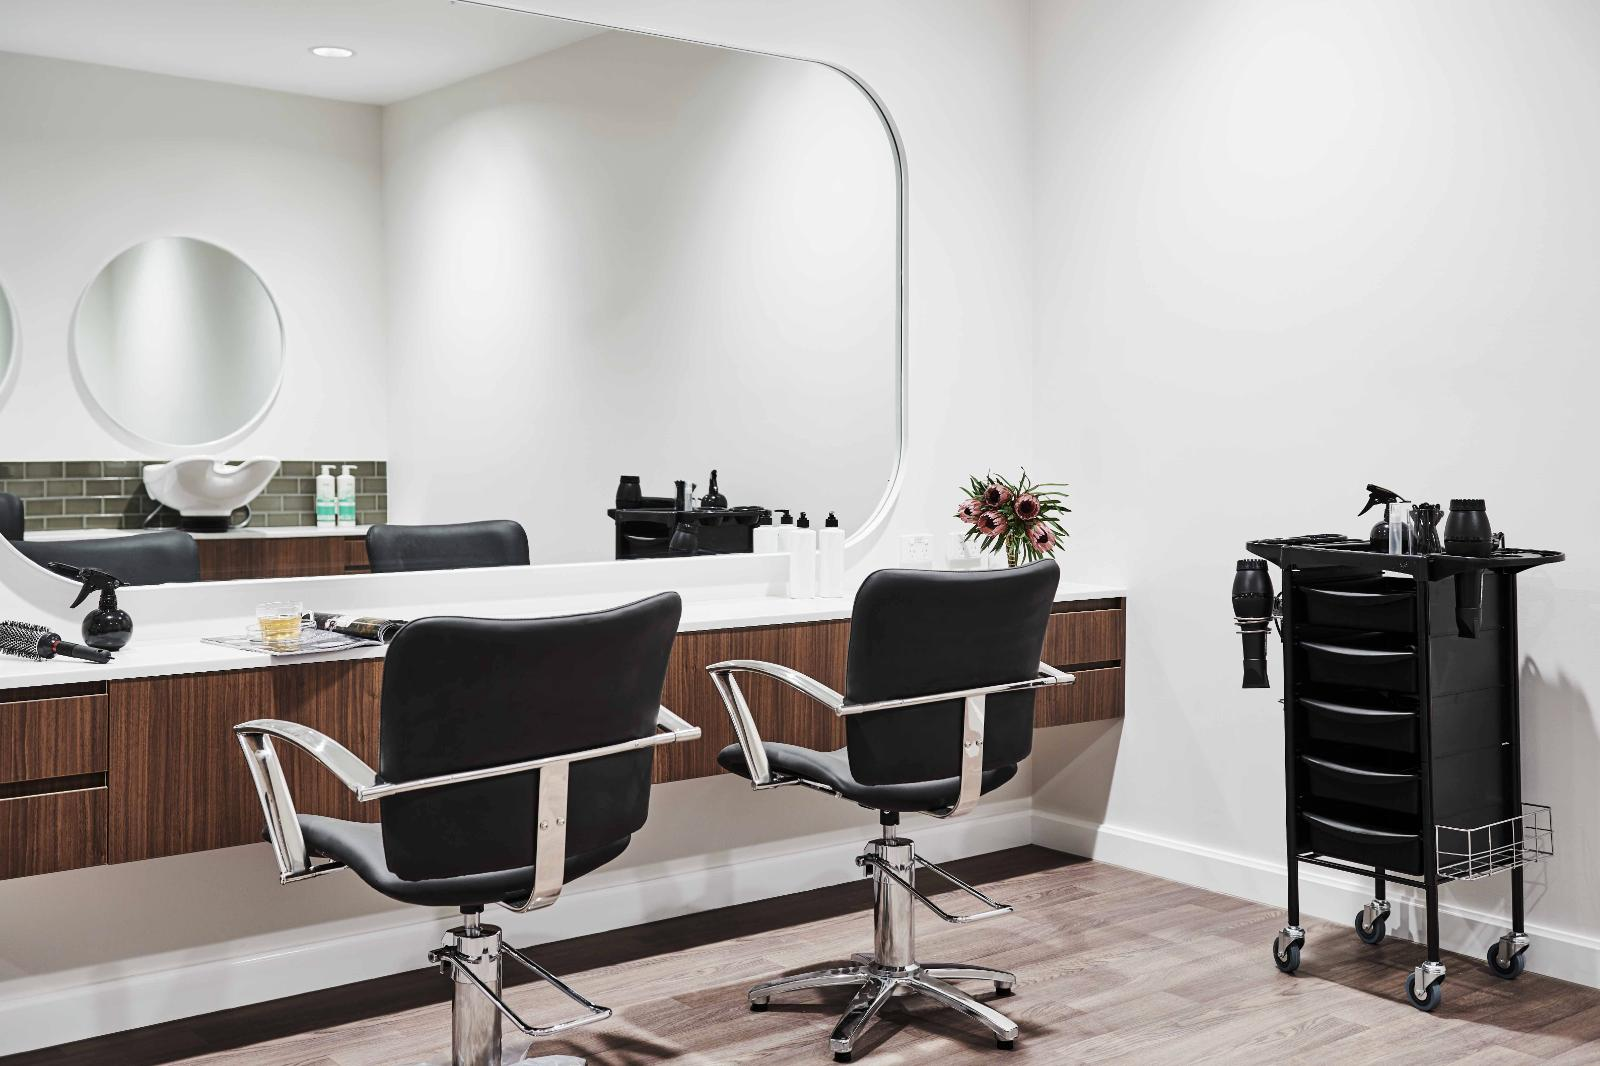 Japara Kingston Gardens - hair salon